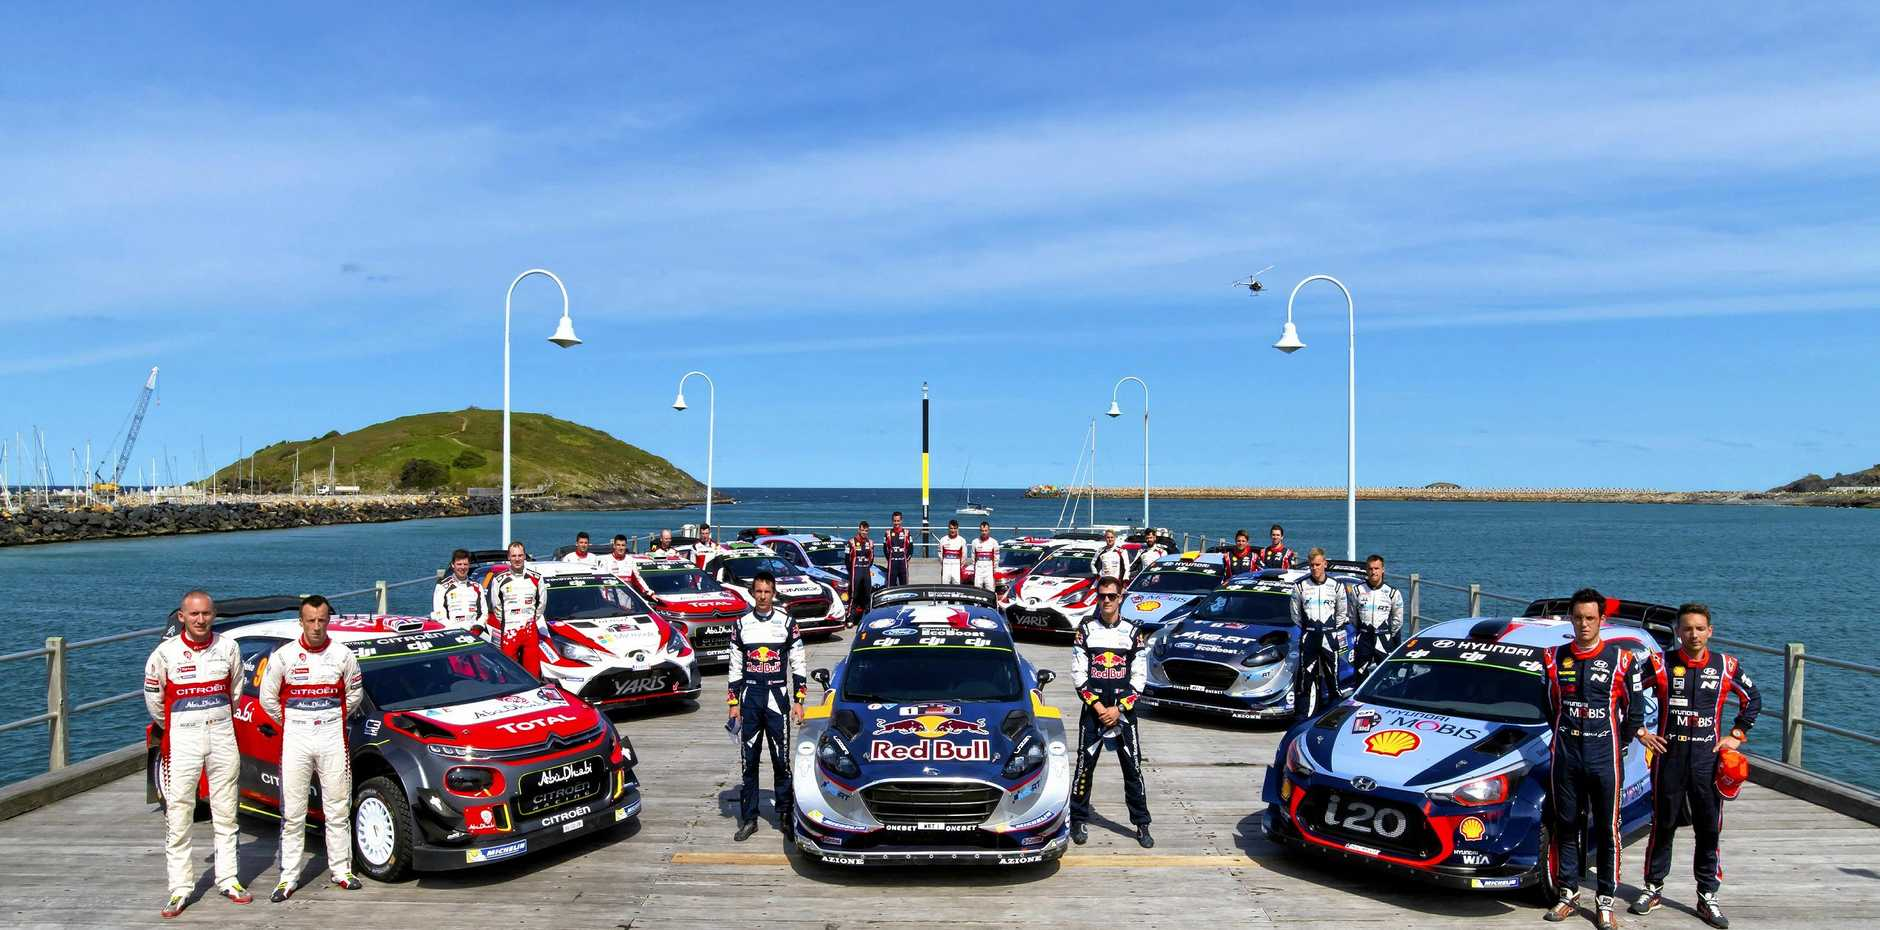 Feel the thrill of the WRC at Kennards Hire Rally Australia. November 15 - 18 on the Coffs Coast.